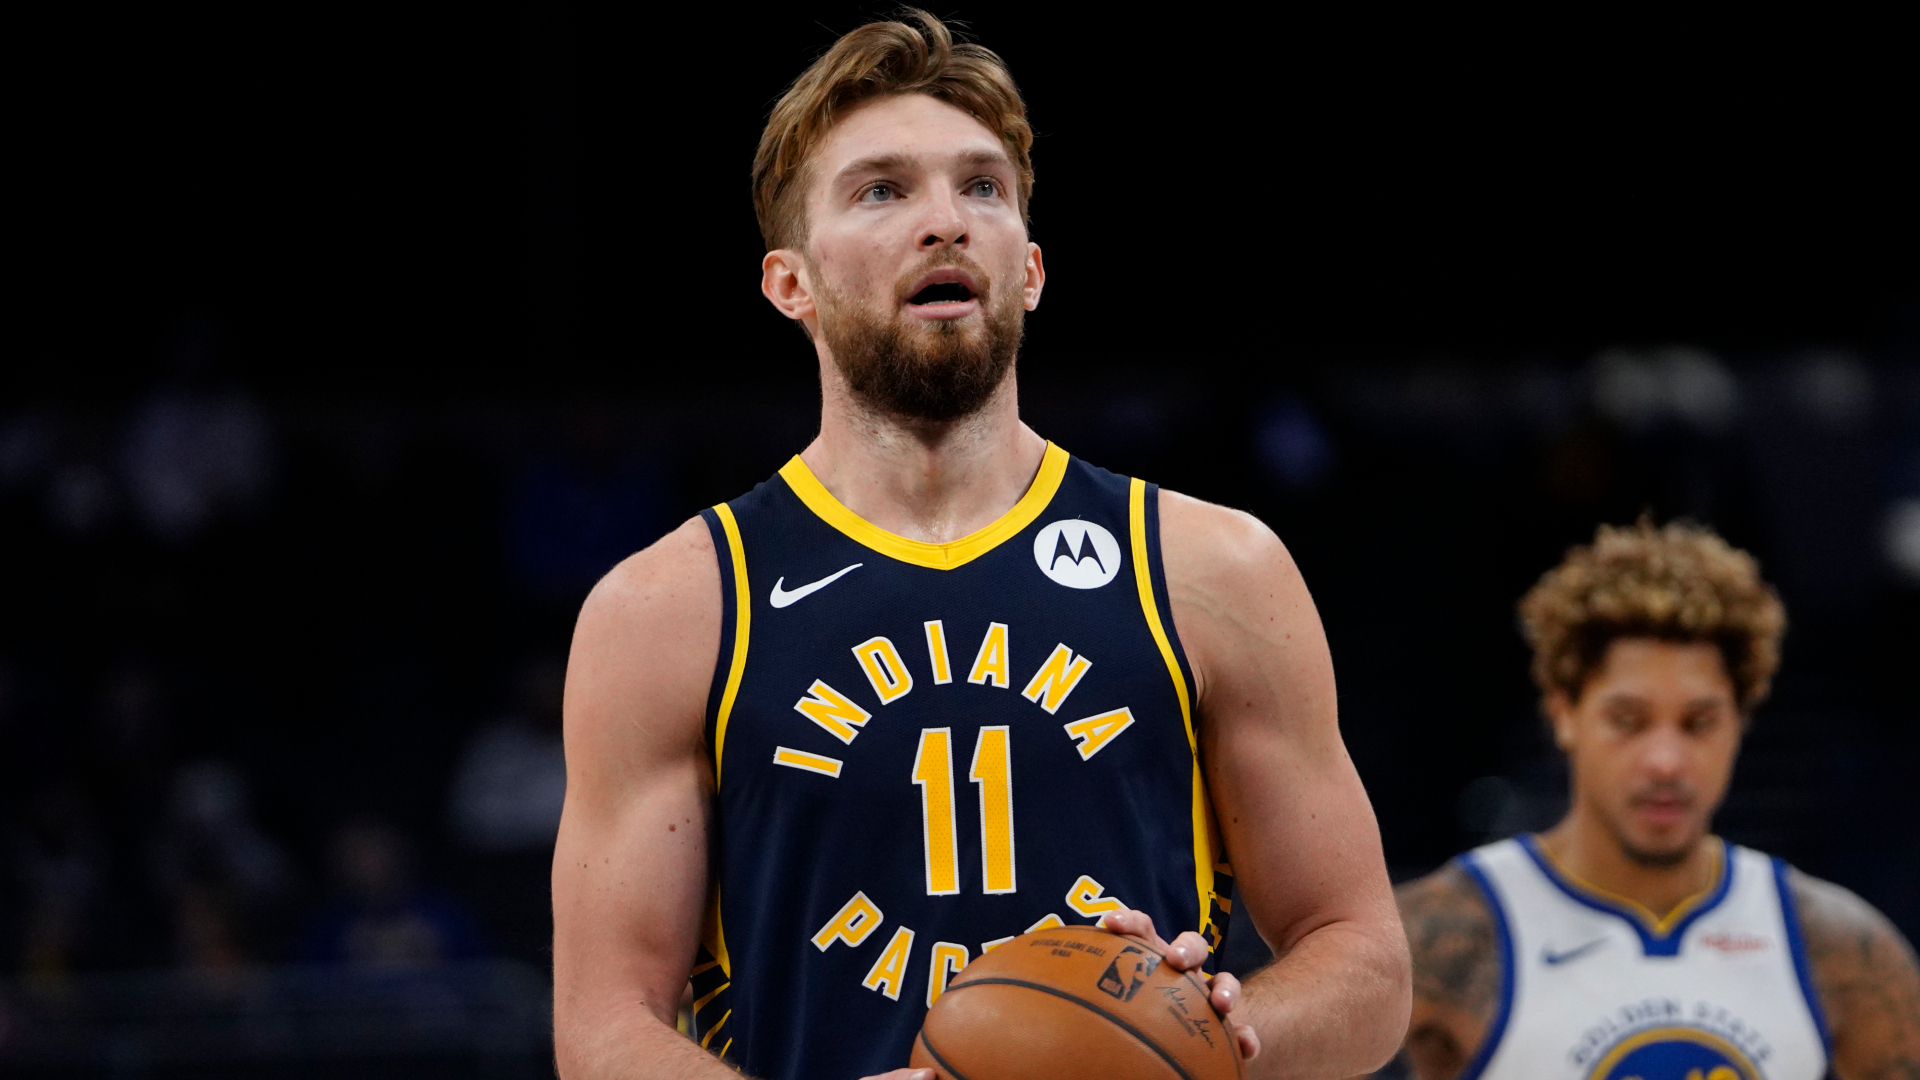 Pacers' Sabonis replaces injured Durant in All-Star Game